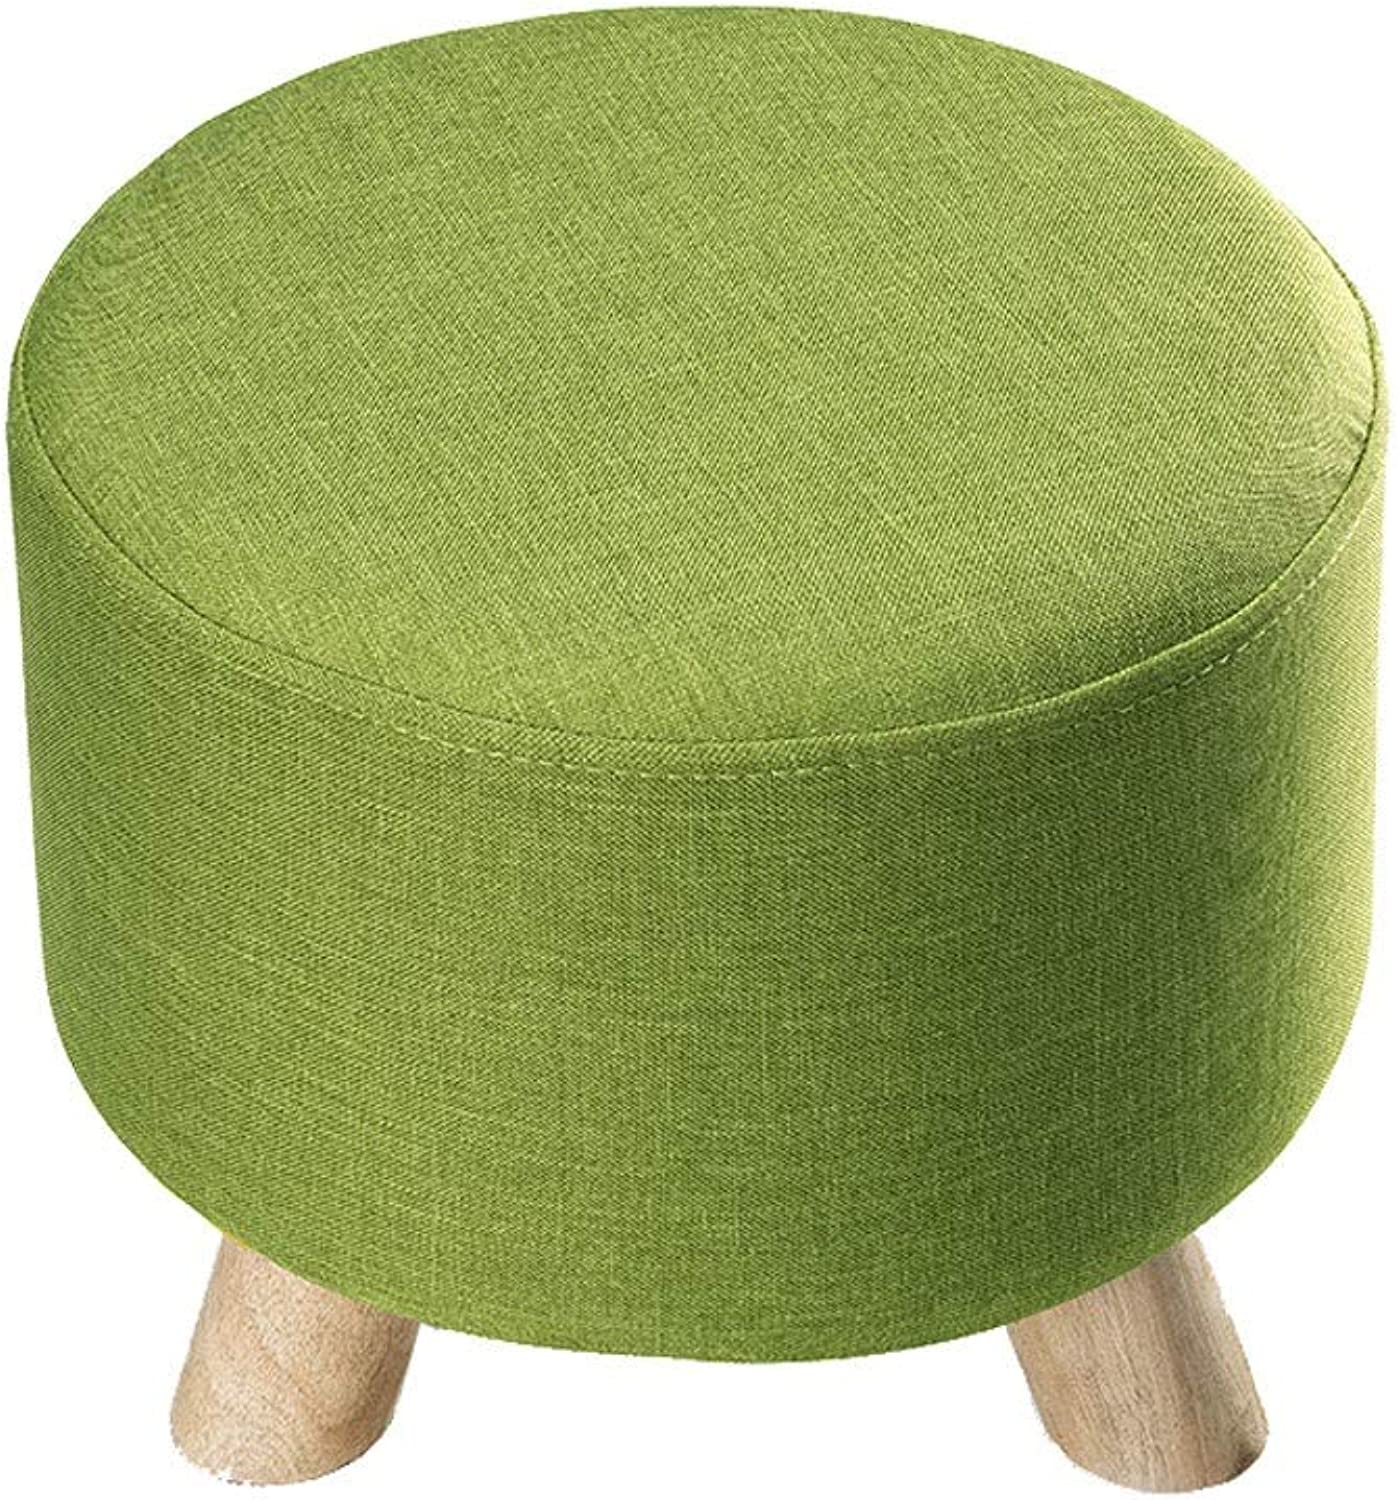 Ailj Footstool, Household Washable shoes Bench Living Room Fabric Three-Legged Small Stool 30  30  28cm 4 colors (color   Green)